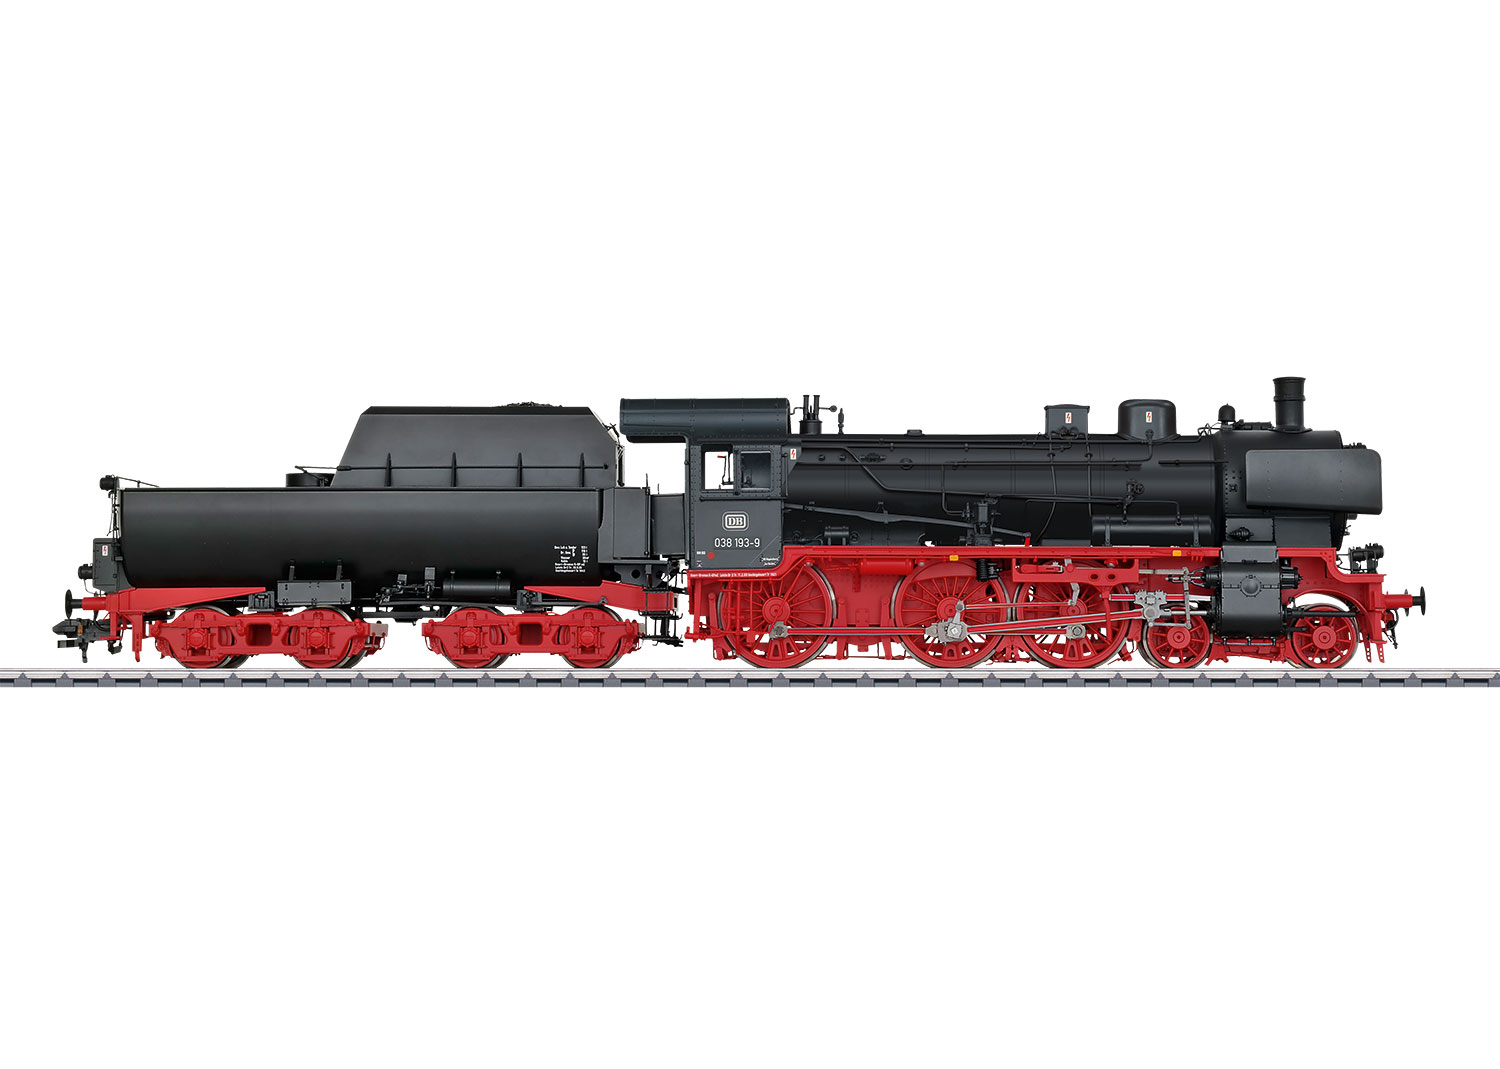 Steam Locomotive with a Tub-Style Tender